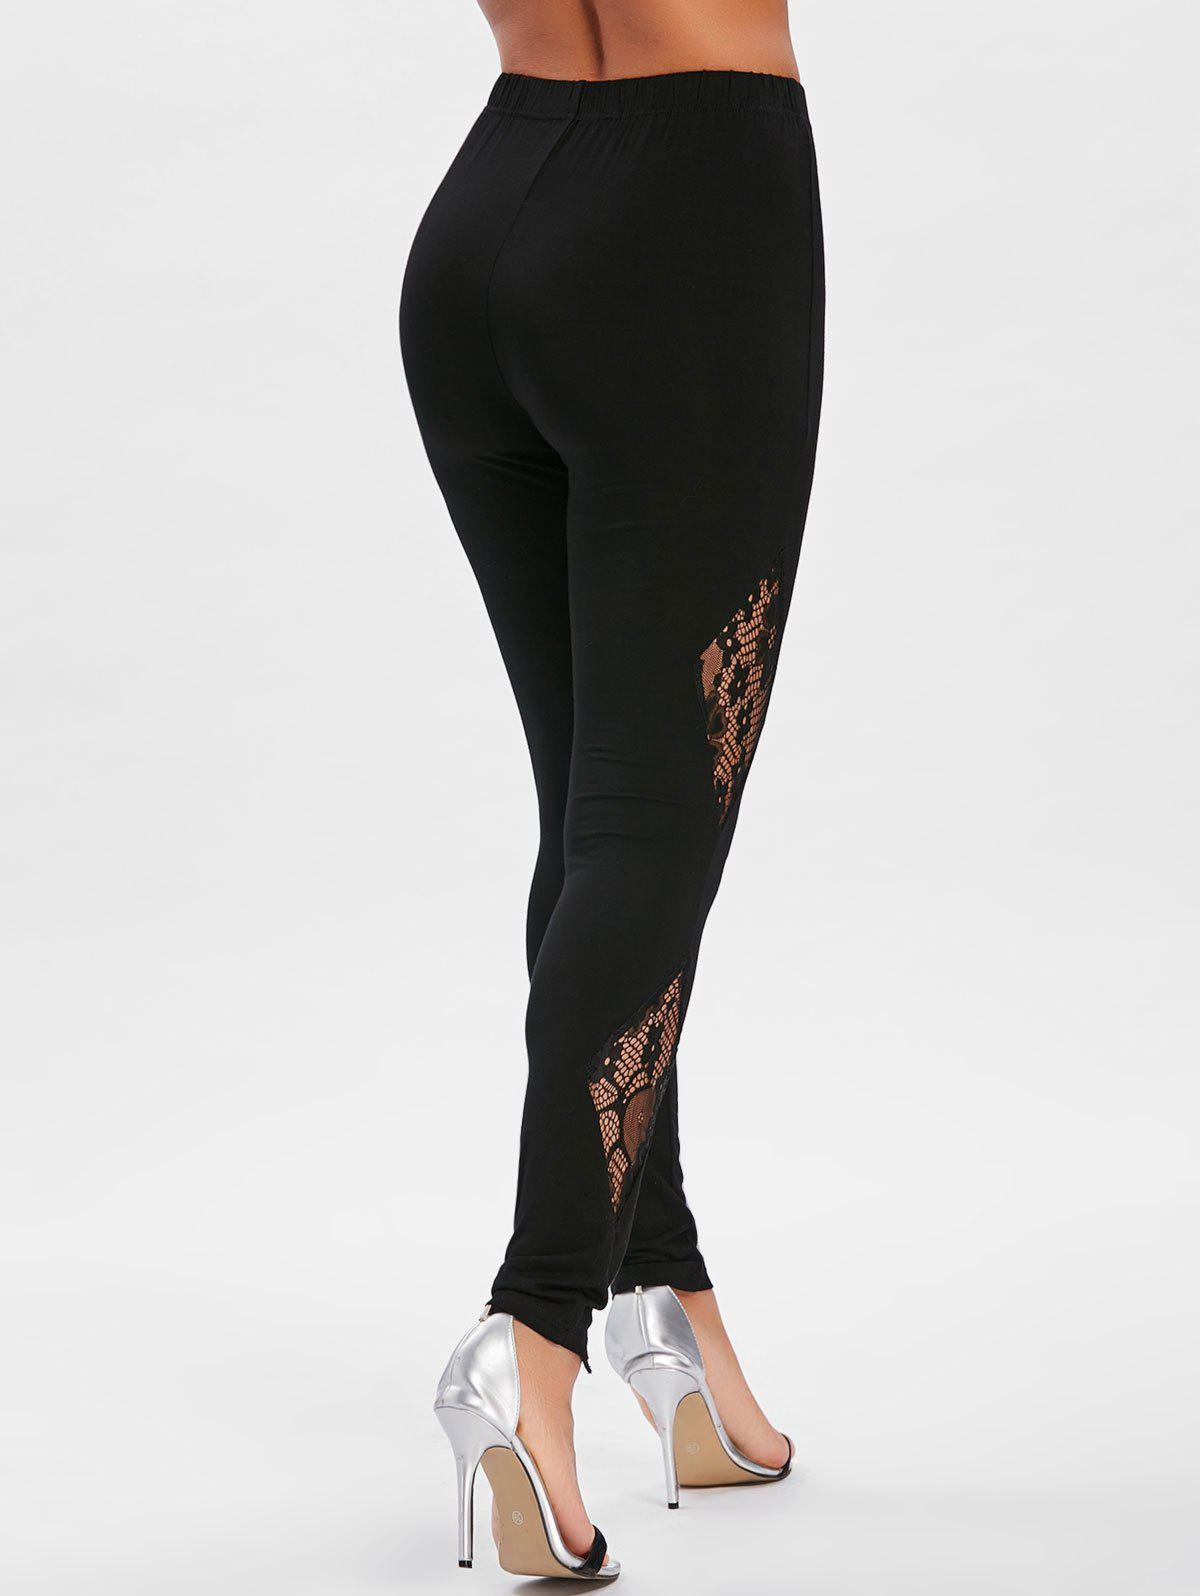 Shop Sheer Lace Insert Fitted Leggings